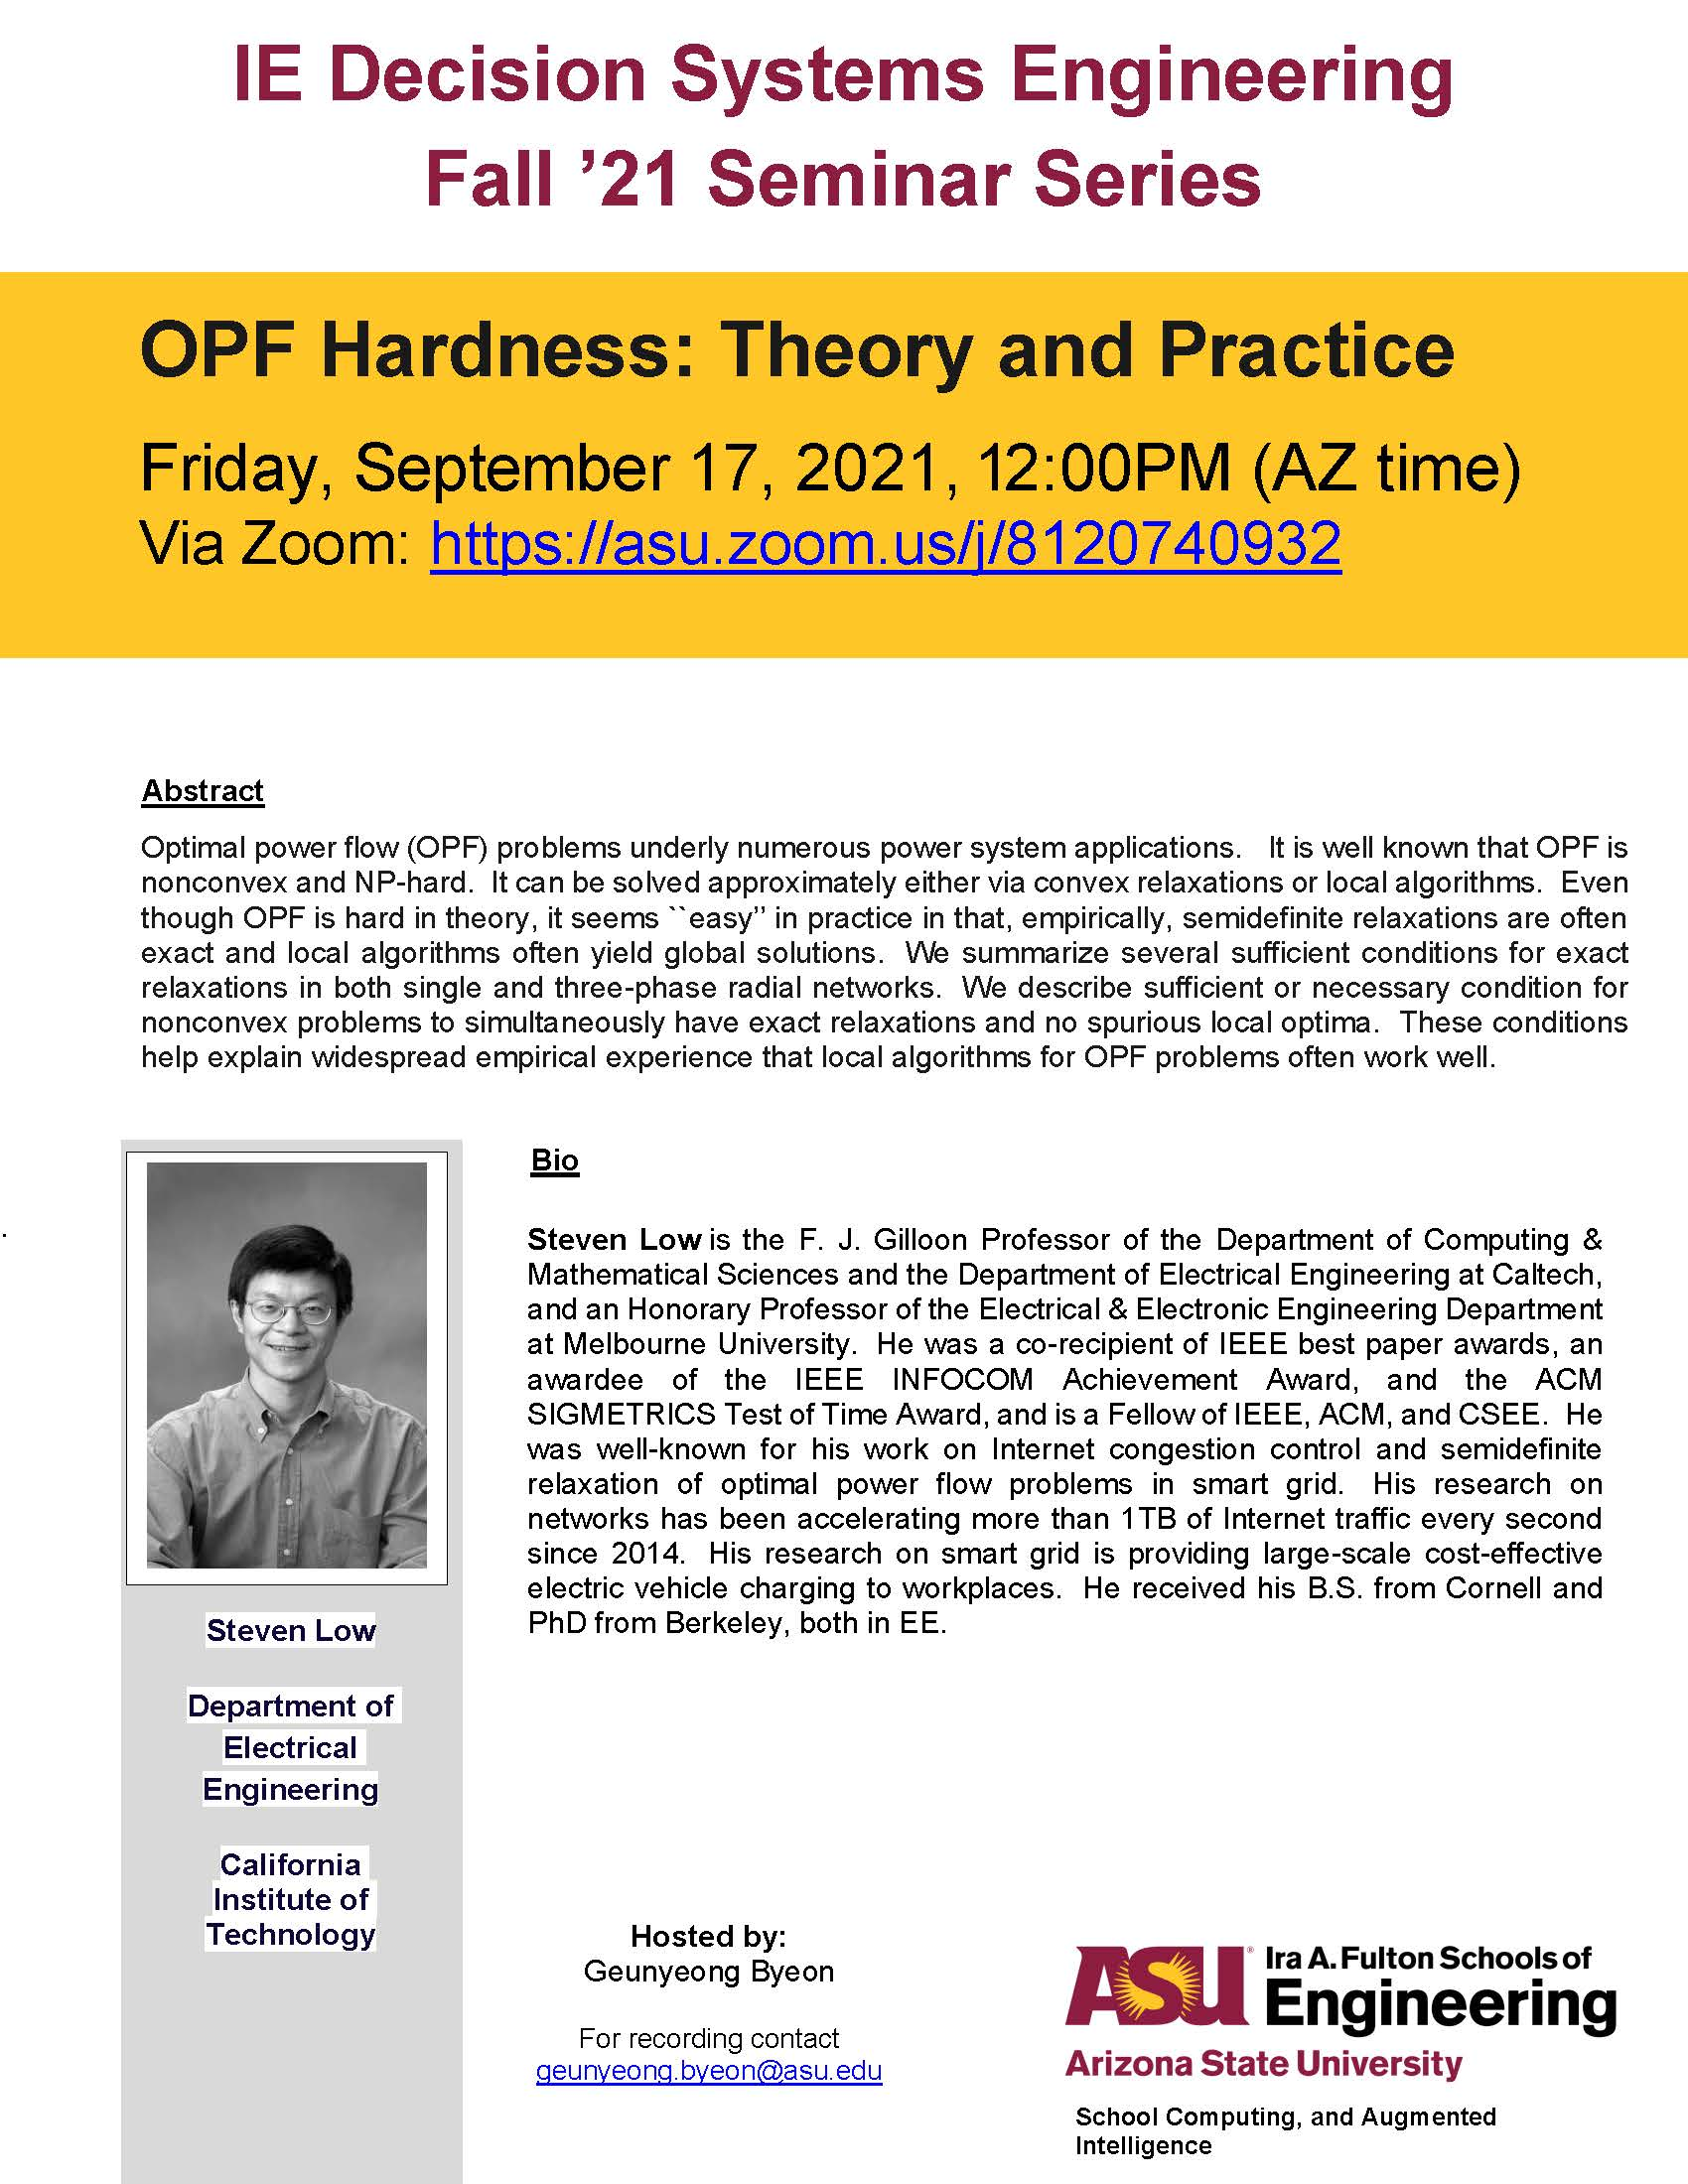 OPF Hardness: Theory and Practice by Steven Low, September 17, 2021